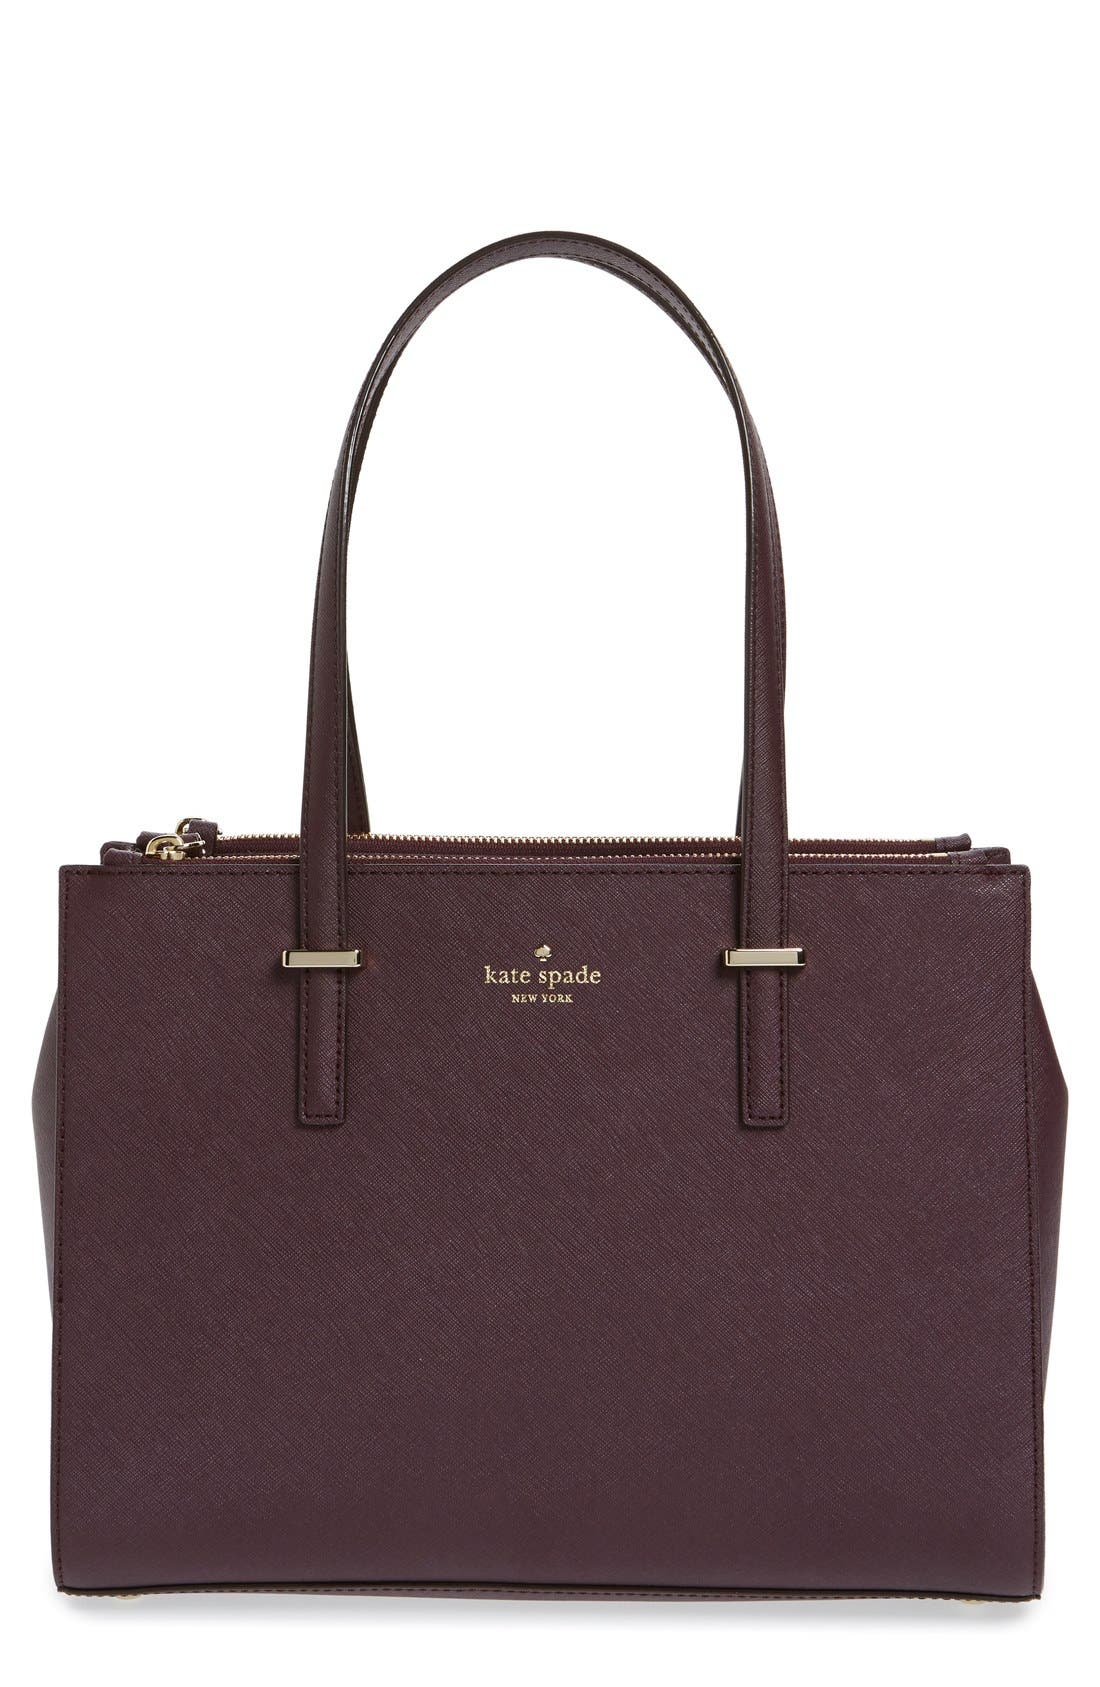 Alternate Image 1 Selected - kate spade new york 'cedar street - small jensen' leather tote